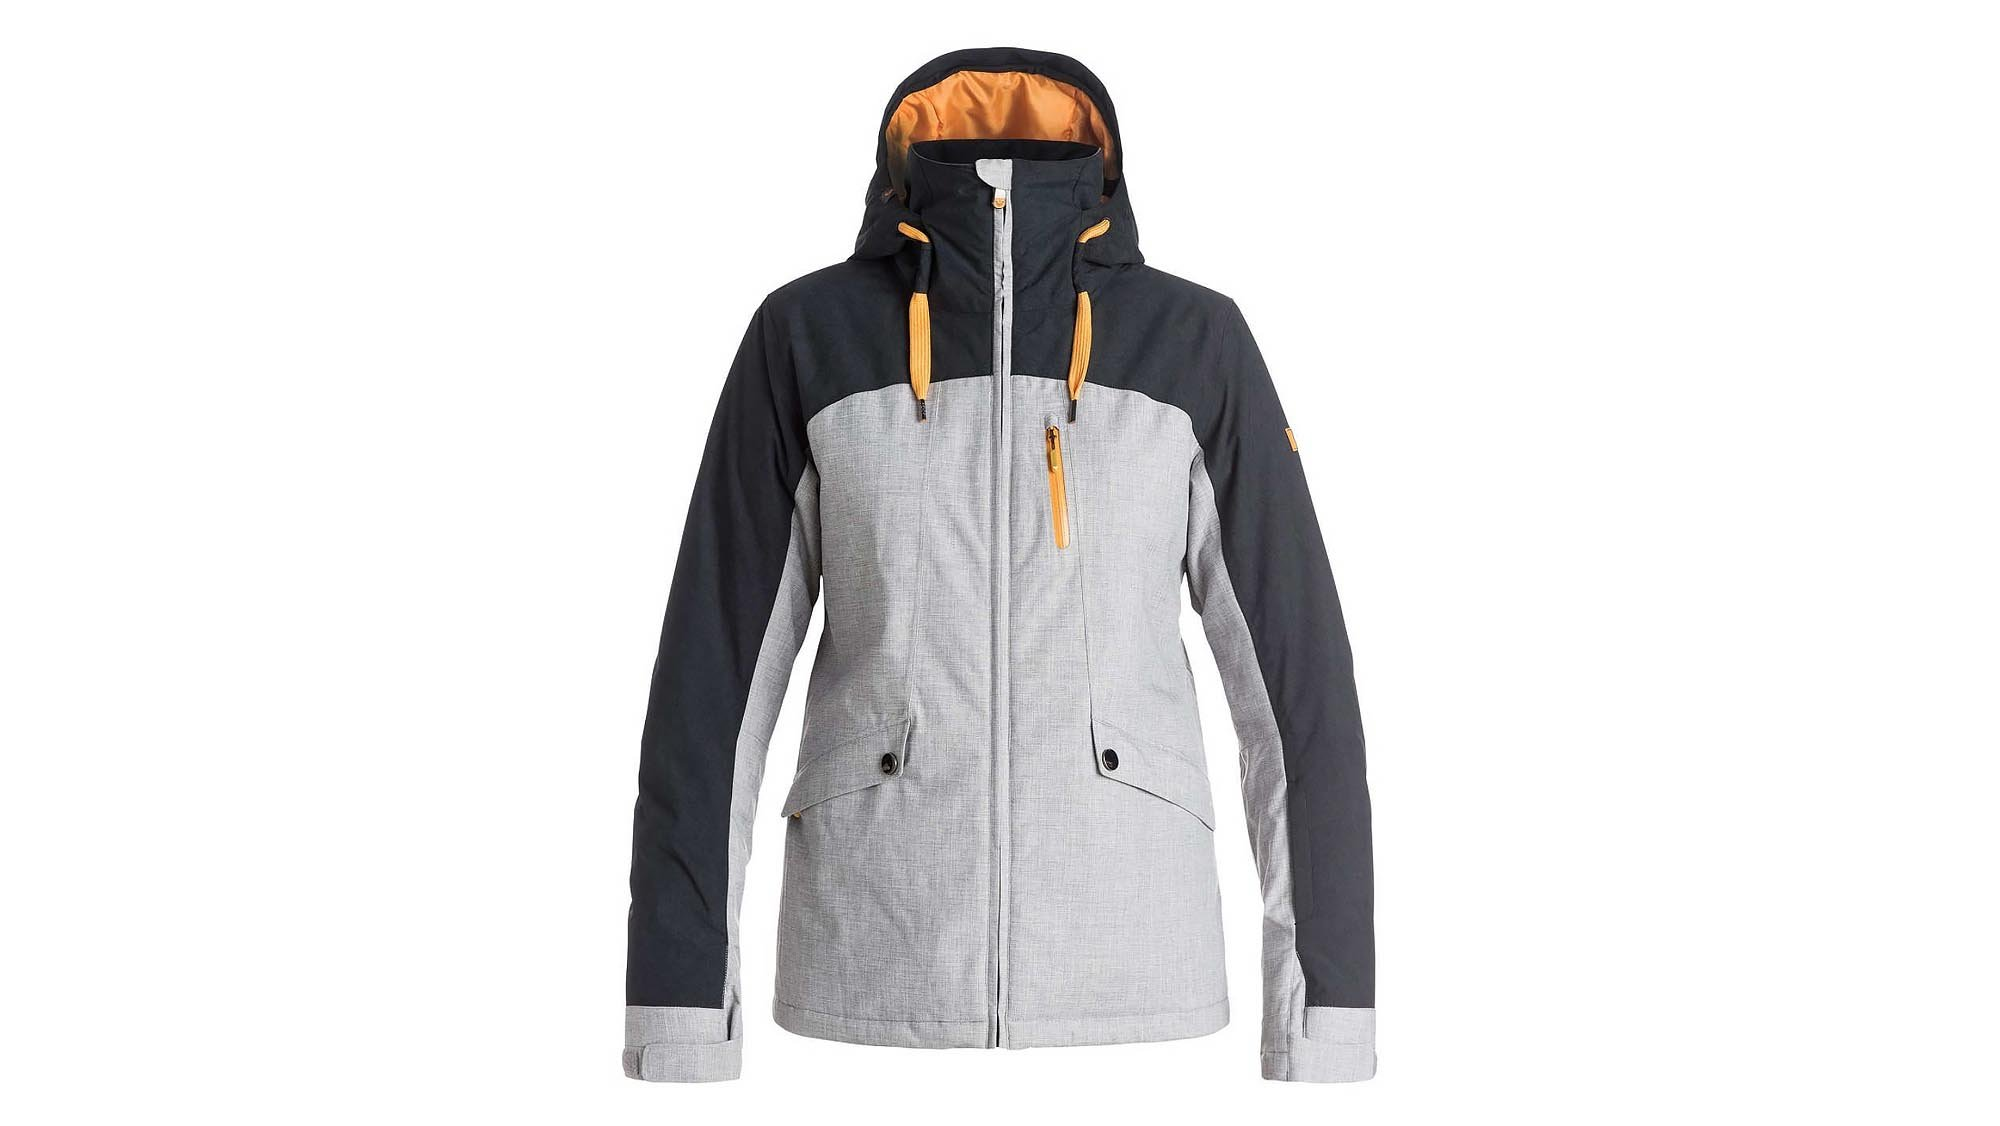 39f556e046 Roxy s stylish Wildlife jacket packs in all the design features you d want  in a ski outer